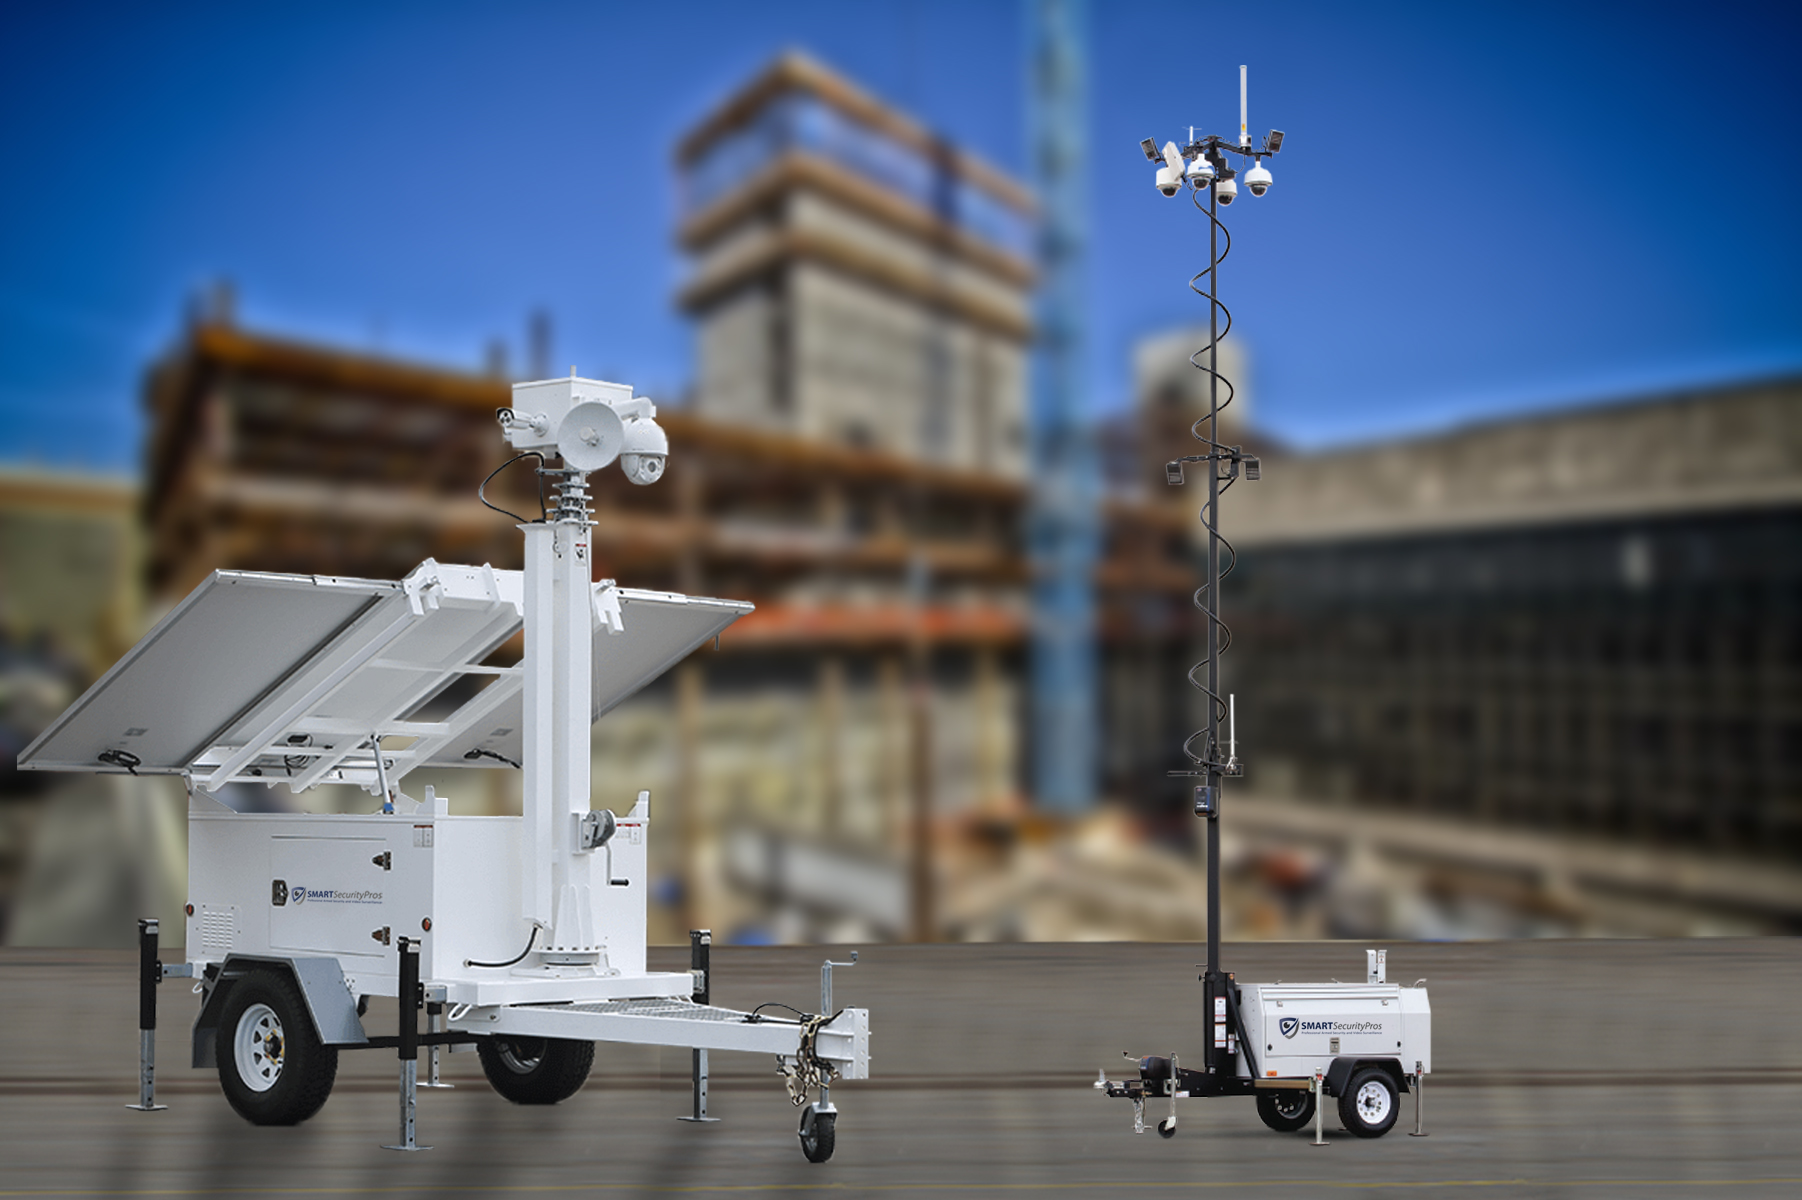 Construction Site Security Using Mobile Video Guard